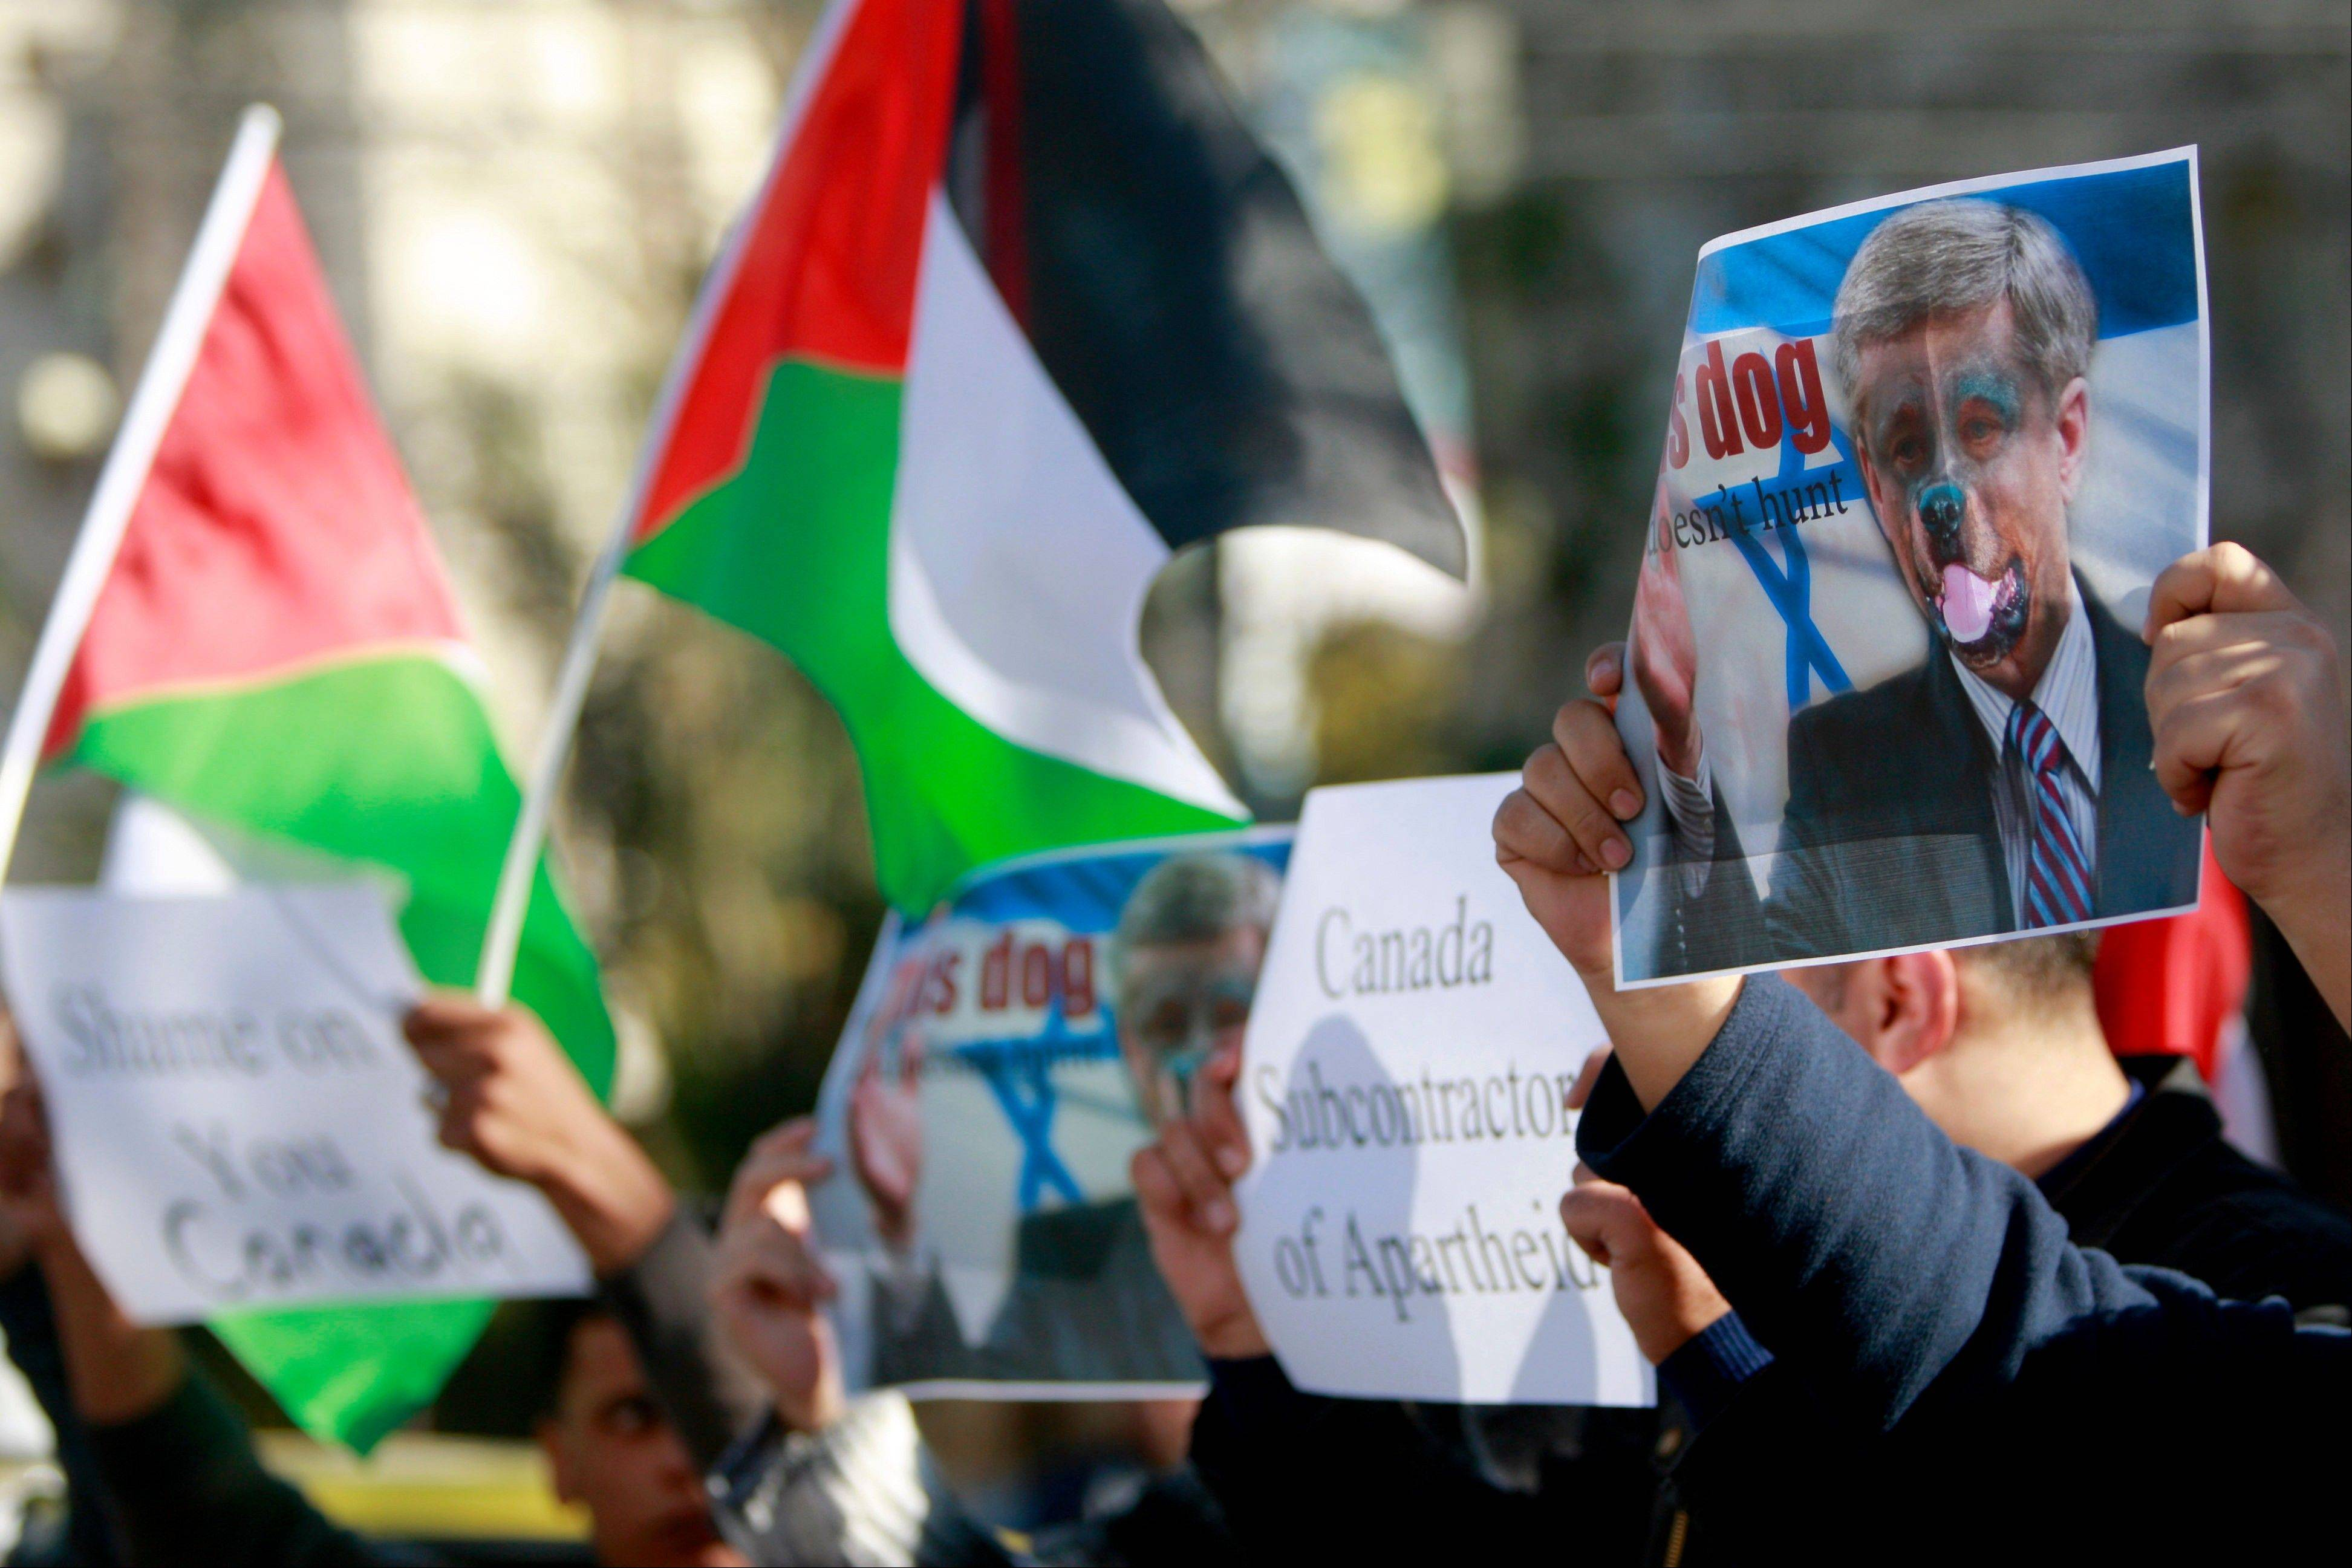 Palestinians hold a Palestinian flag and a poster of Canadian Prime Minister Stephen Harper superimposed with a face of a dog during a protest following his remarks about the Palestinian UN bid for an observer state status, in front of Canadian representative offices in the West bank city of Ramallah, Wednesday, Nov. 28, 2012. Harper has threatened �there will be consequences� if Palestinian Authority President Mahmoud Abbas does not end his campaign for the Palestinian Authority to be recognized by the UN as a nonmember observer state.